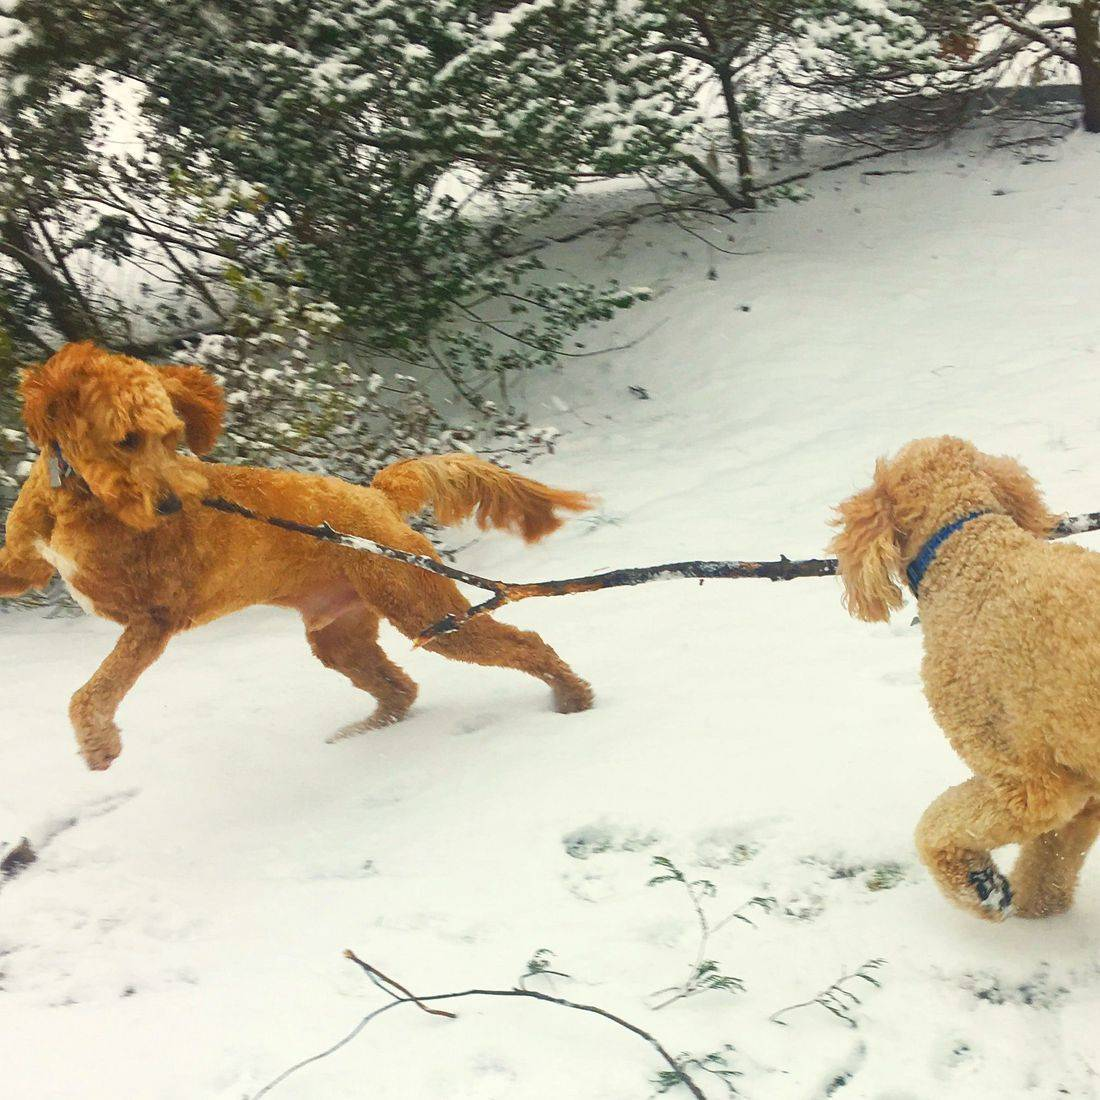 Photo of two dogs playing in the snow